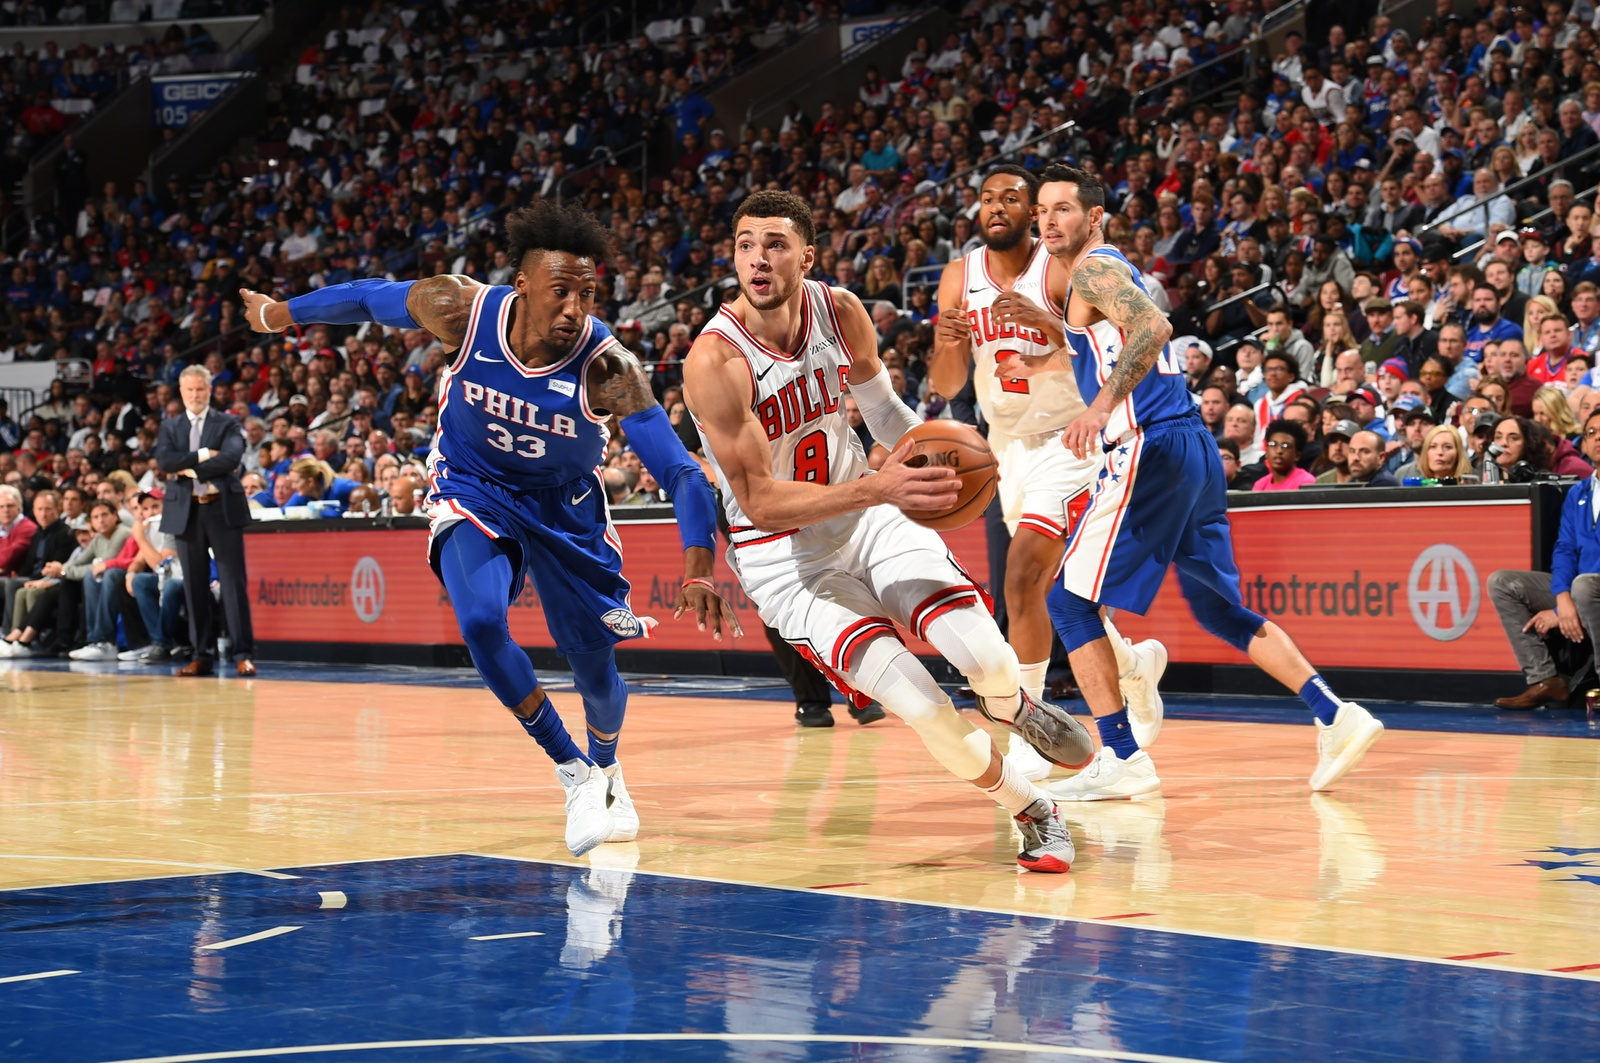 Zach LaVine dribble drive with the ball in the season opener against the Philadelphia 76ers, October 18, 2018